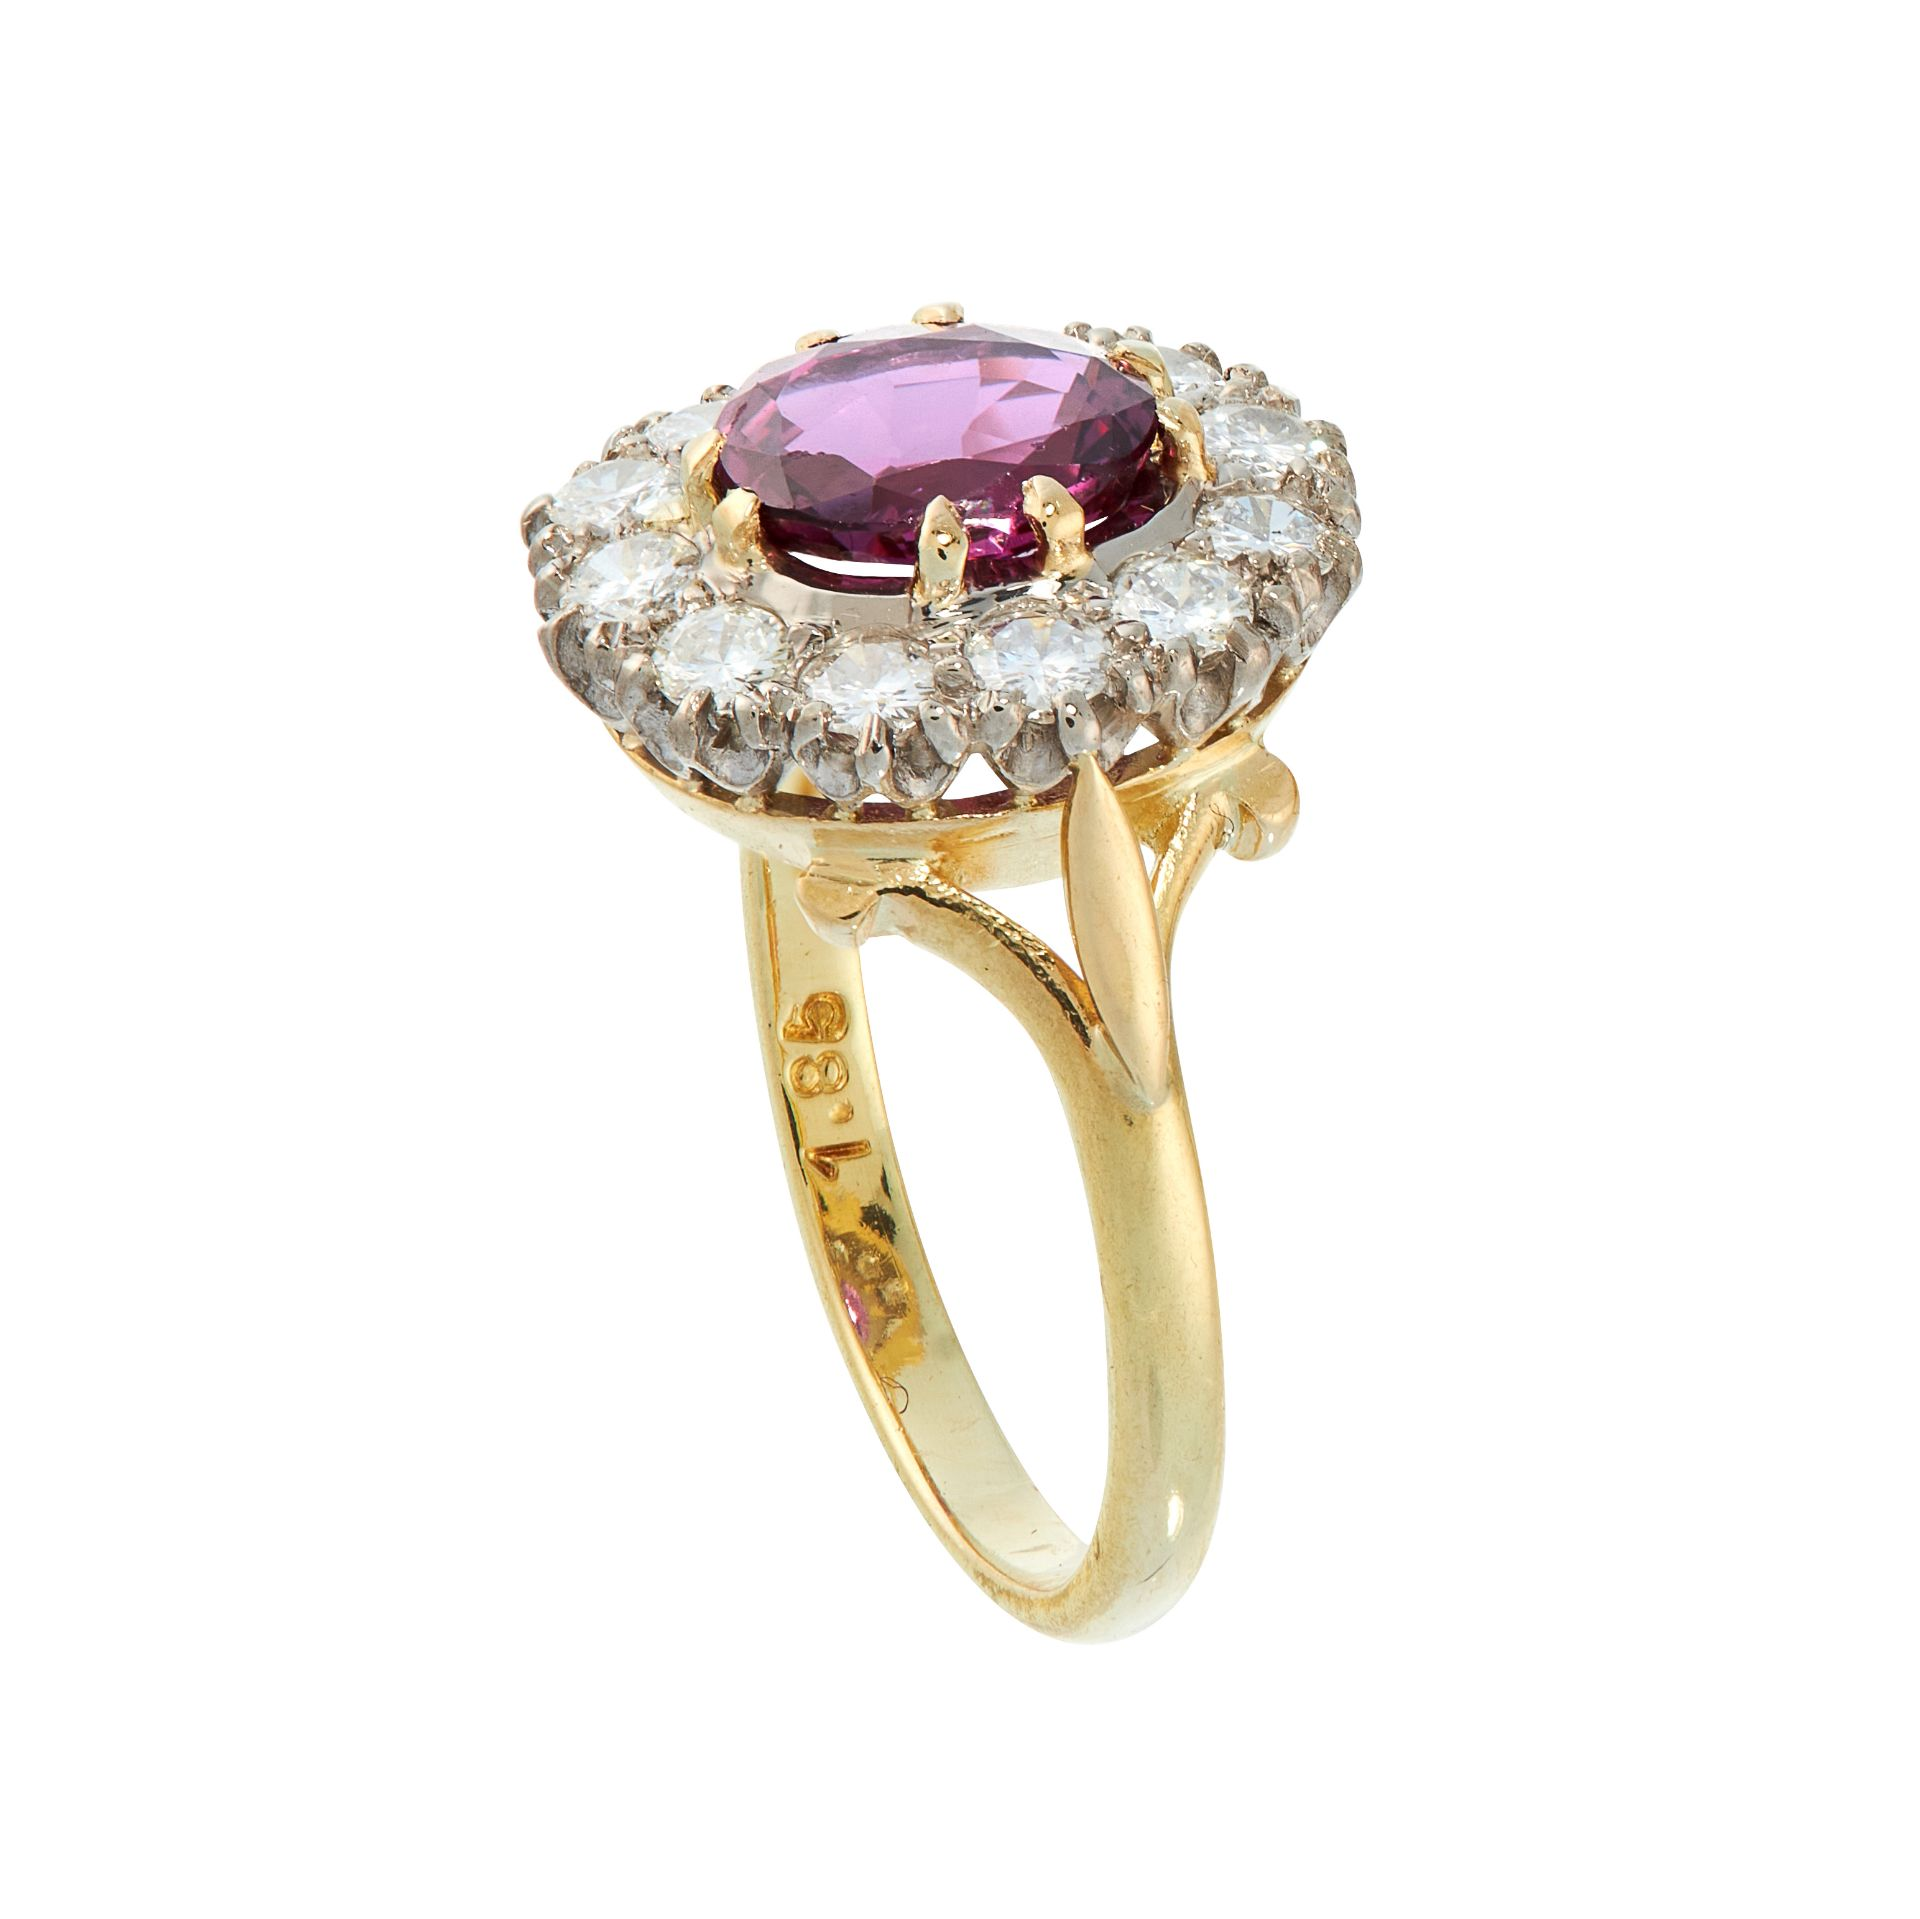 AN UNHEATED RUBY AND DIAMOND DRESS RING in 18ct yellow gold, set with a cushion cut ruby of 1.84 - Bild 2 aus 2